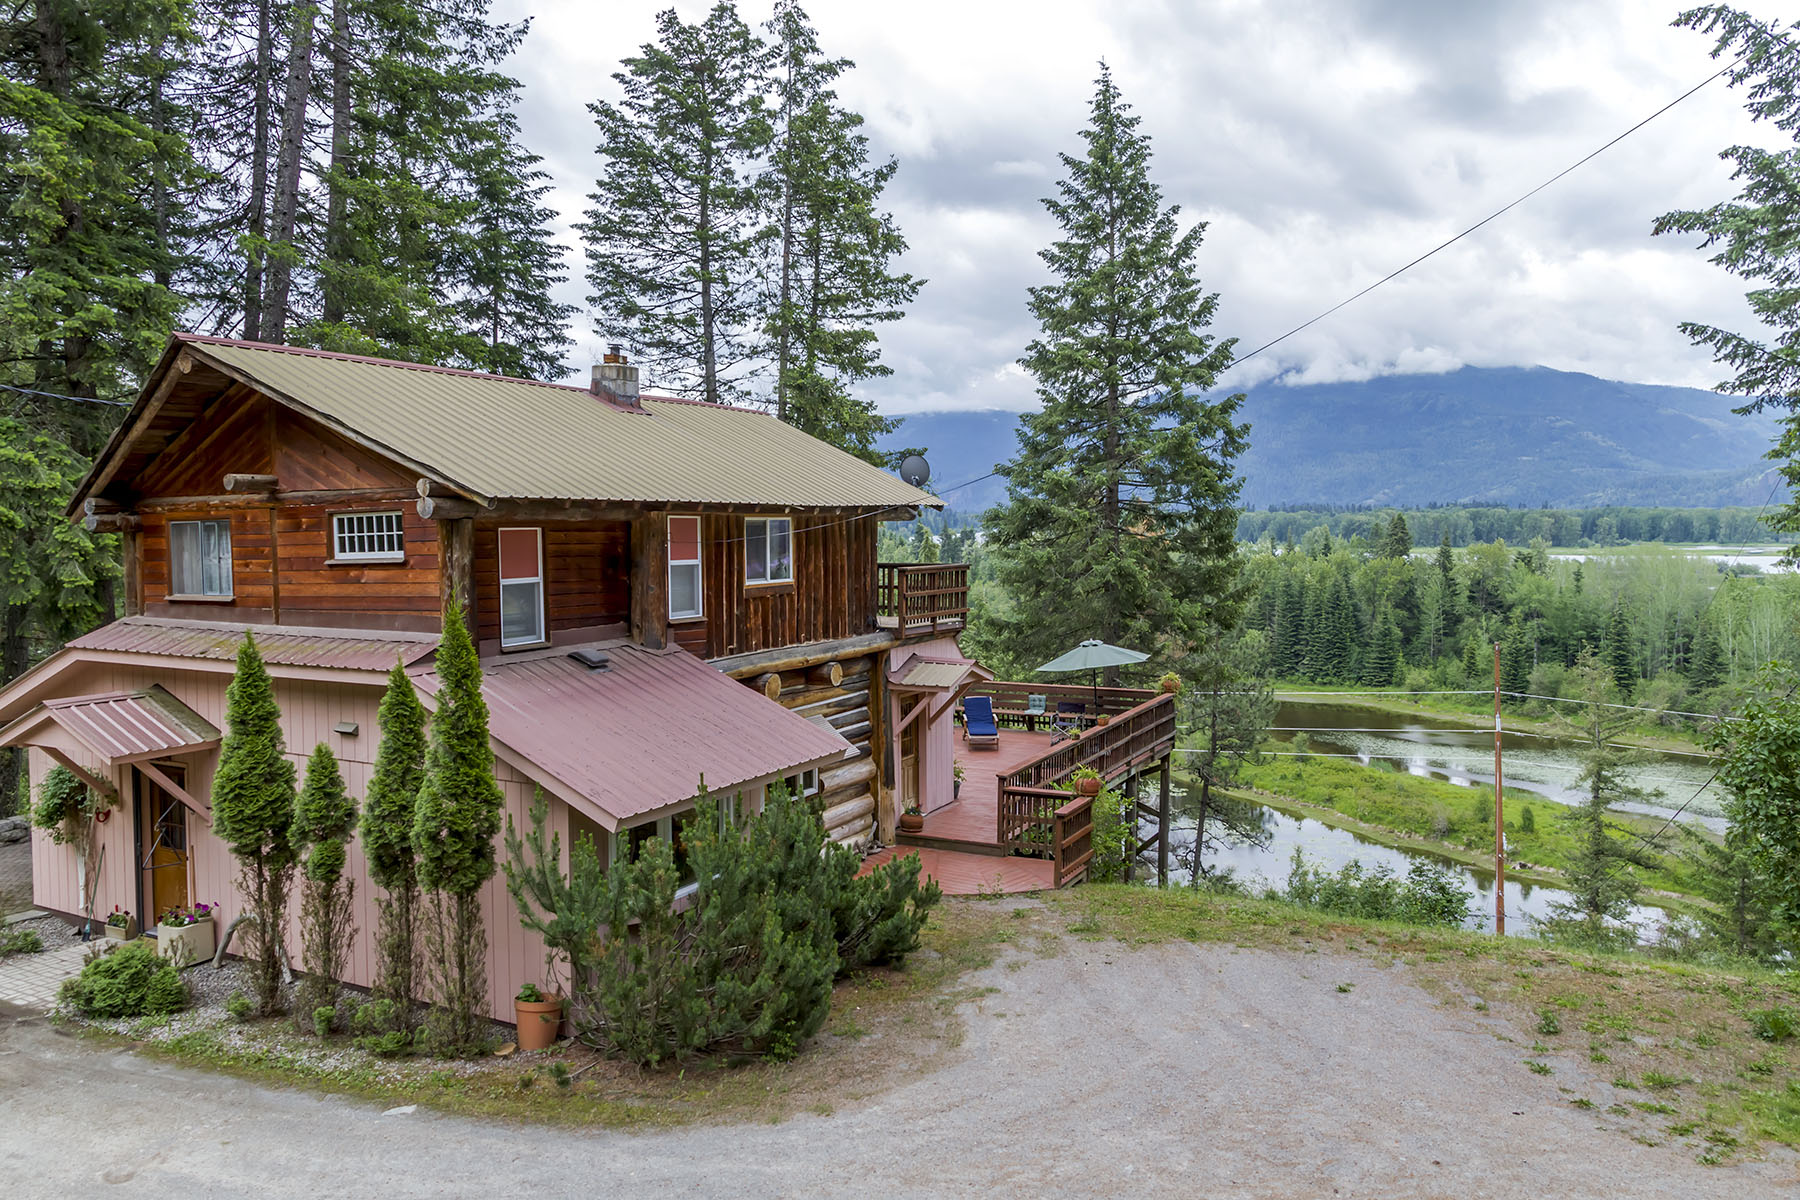 Single Family Home for Sale at Amazing views of beautiful Lake Pend Oreille 52331 Highway 200 Clark Fork, Idaho, 83811 United States